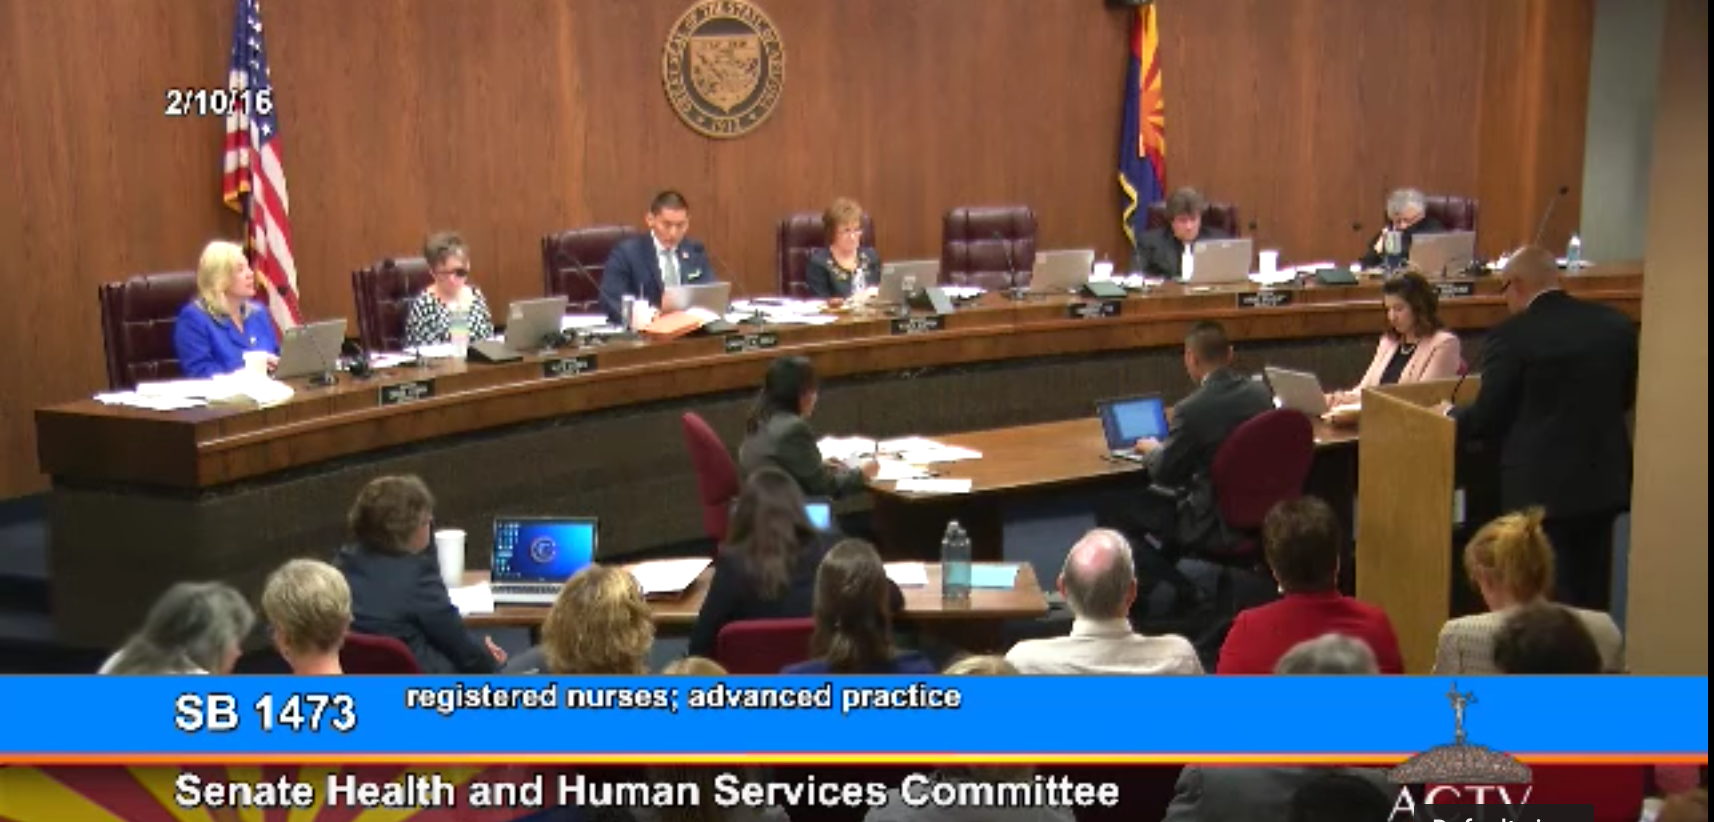 SB 1336 was a multi-year effort and began in 2016 as SB 1473. Here is Dr. Rob Schuster, MD FACS, testifying on the problem of surgeon liability and the high quality care CRNAs offer.